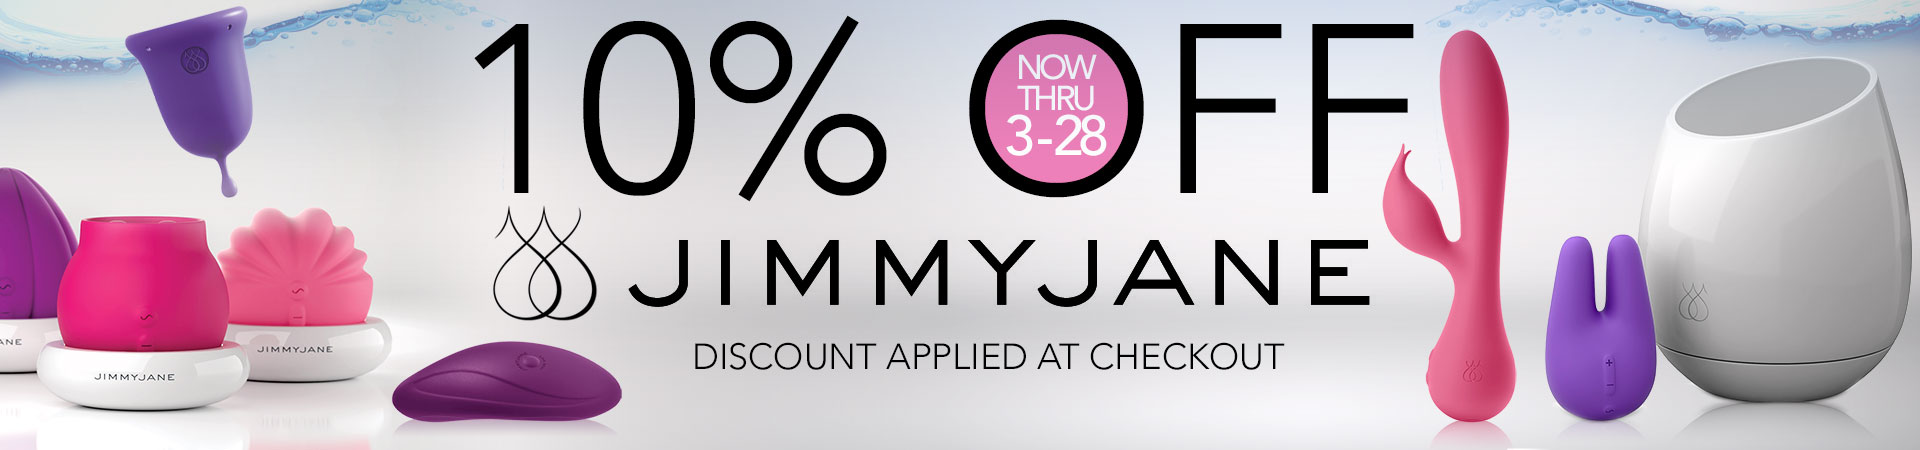 Save 10% On All Jimmyjane Pleasure Toys - Now Thru March 28Th! Discount Applied At Checkout